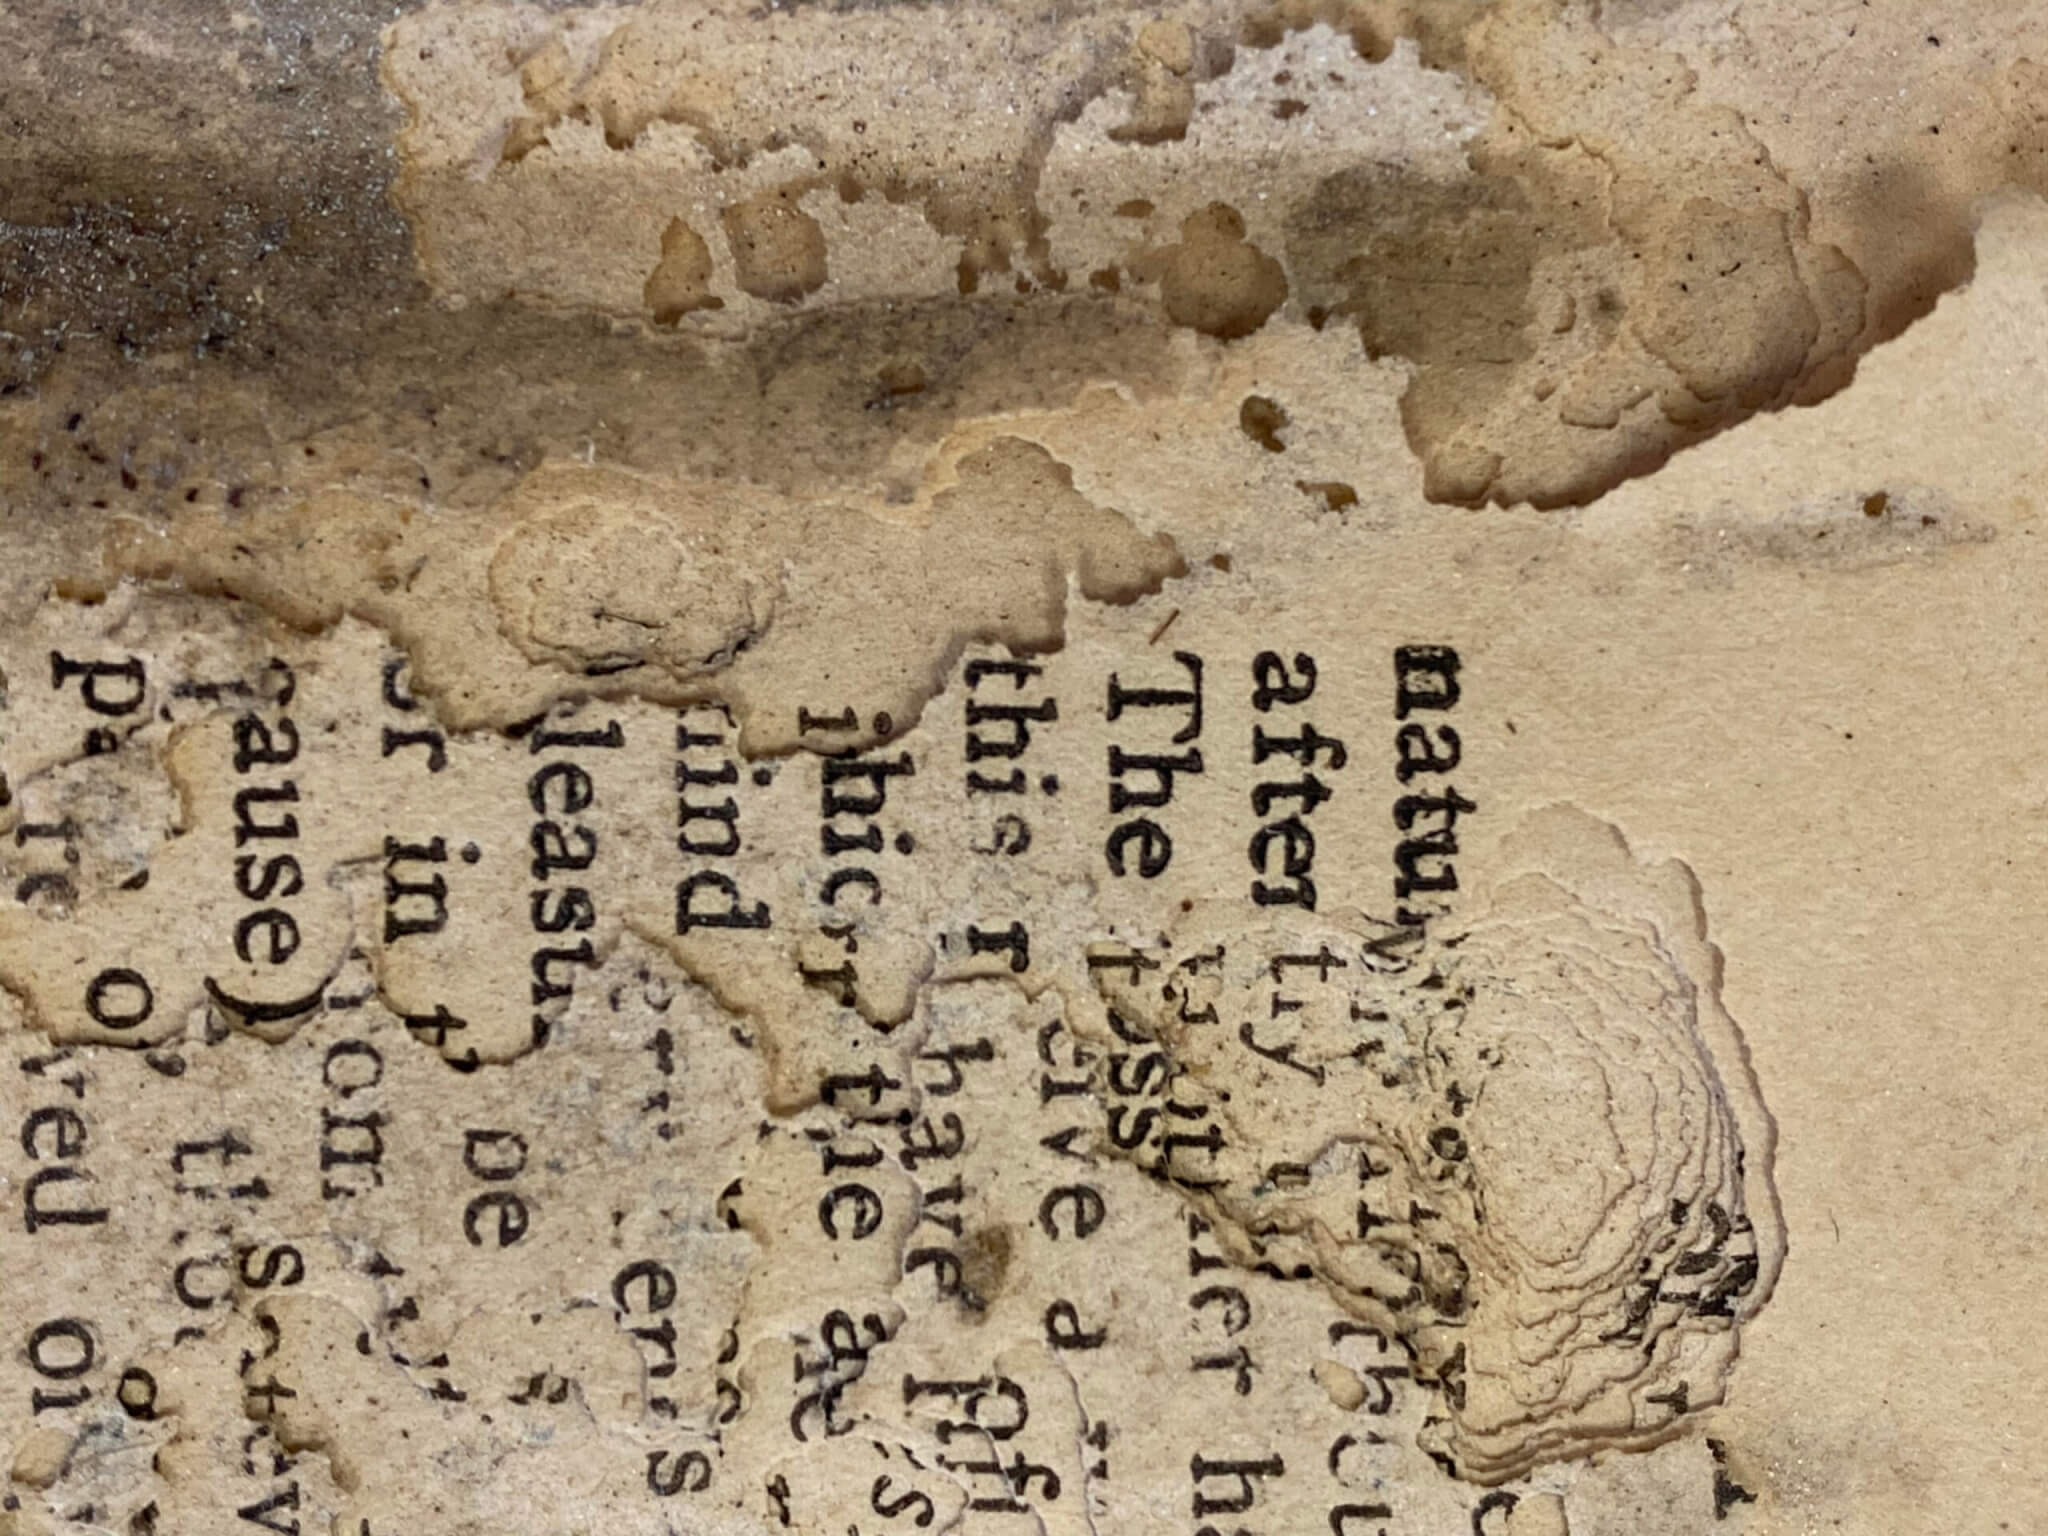 Bookworms insect damage book conservation fine art disaster response antique restoration insect infestation book worms